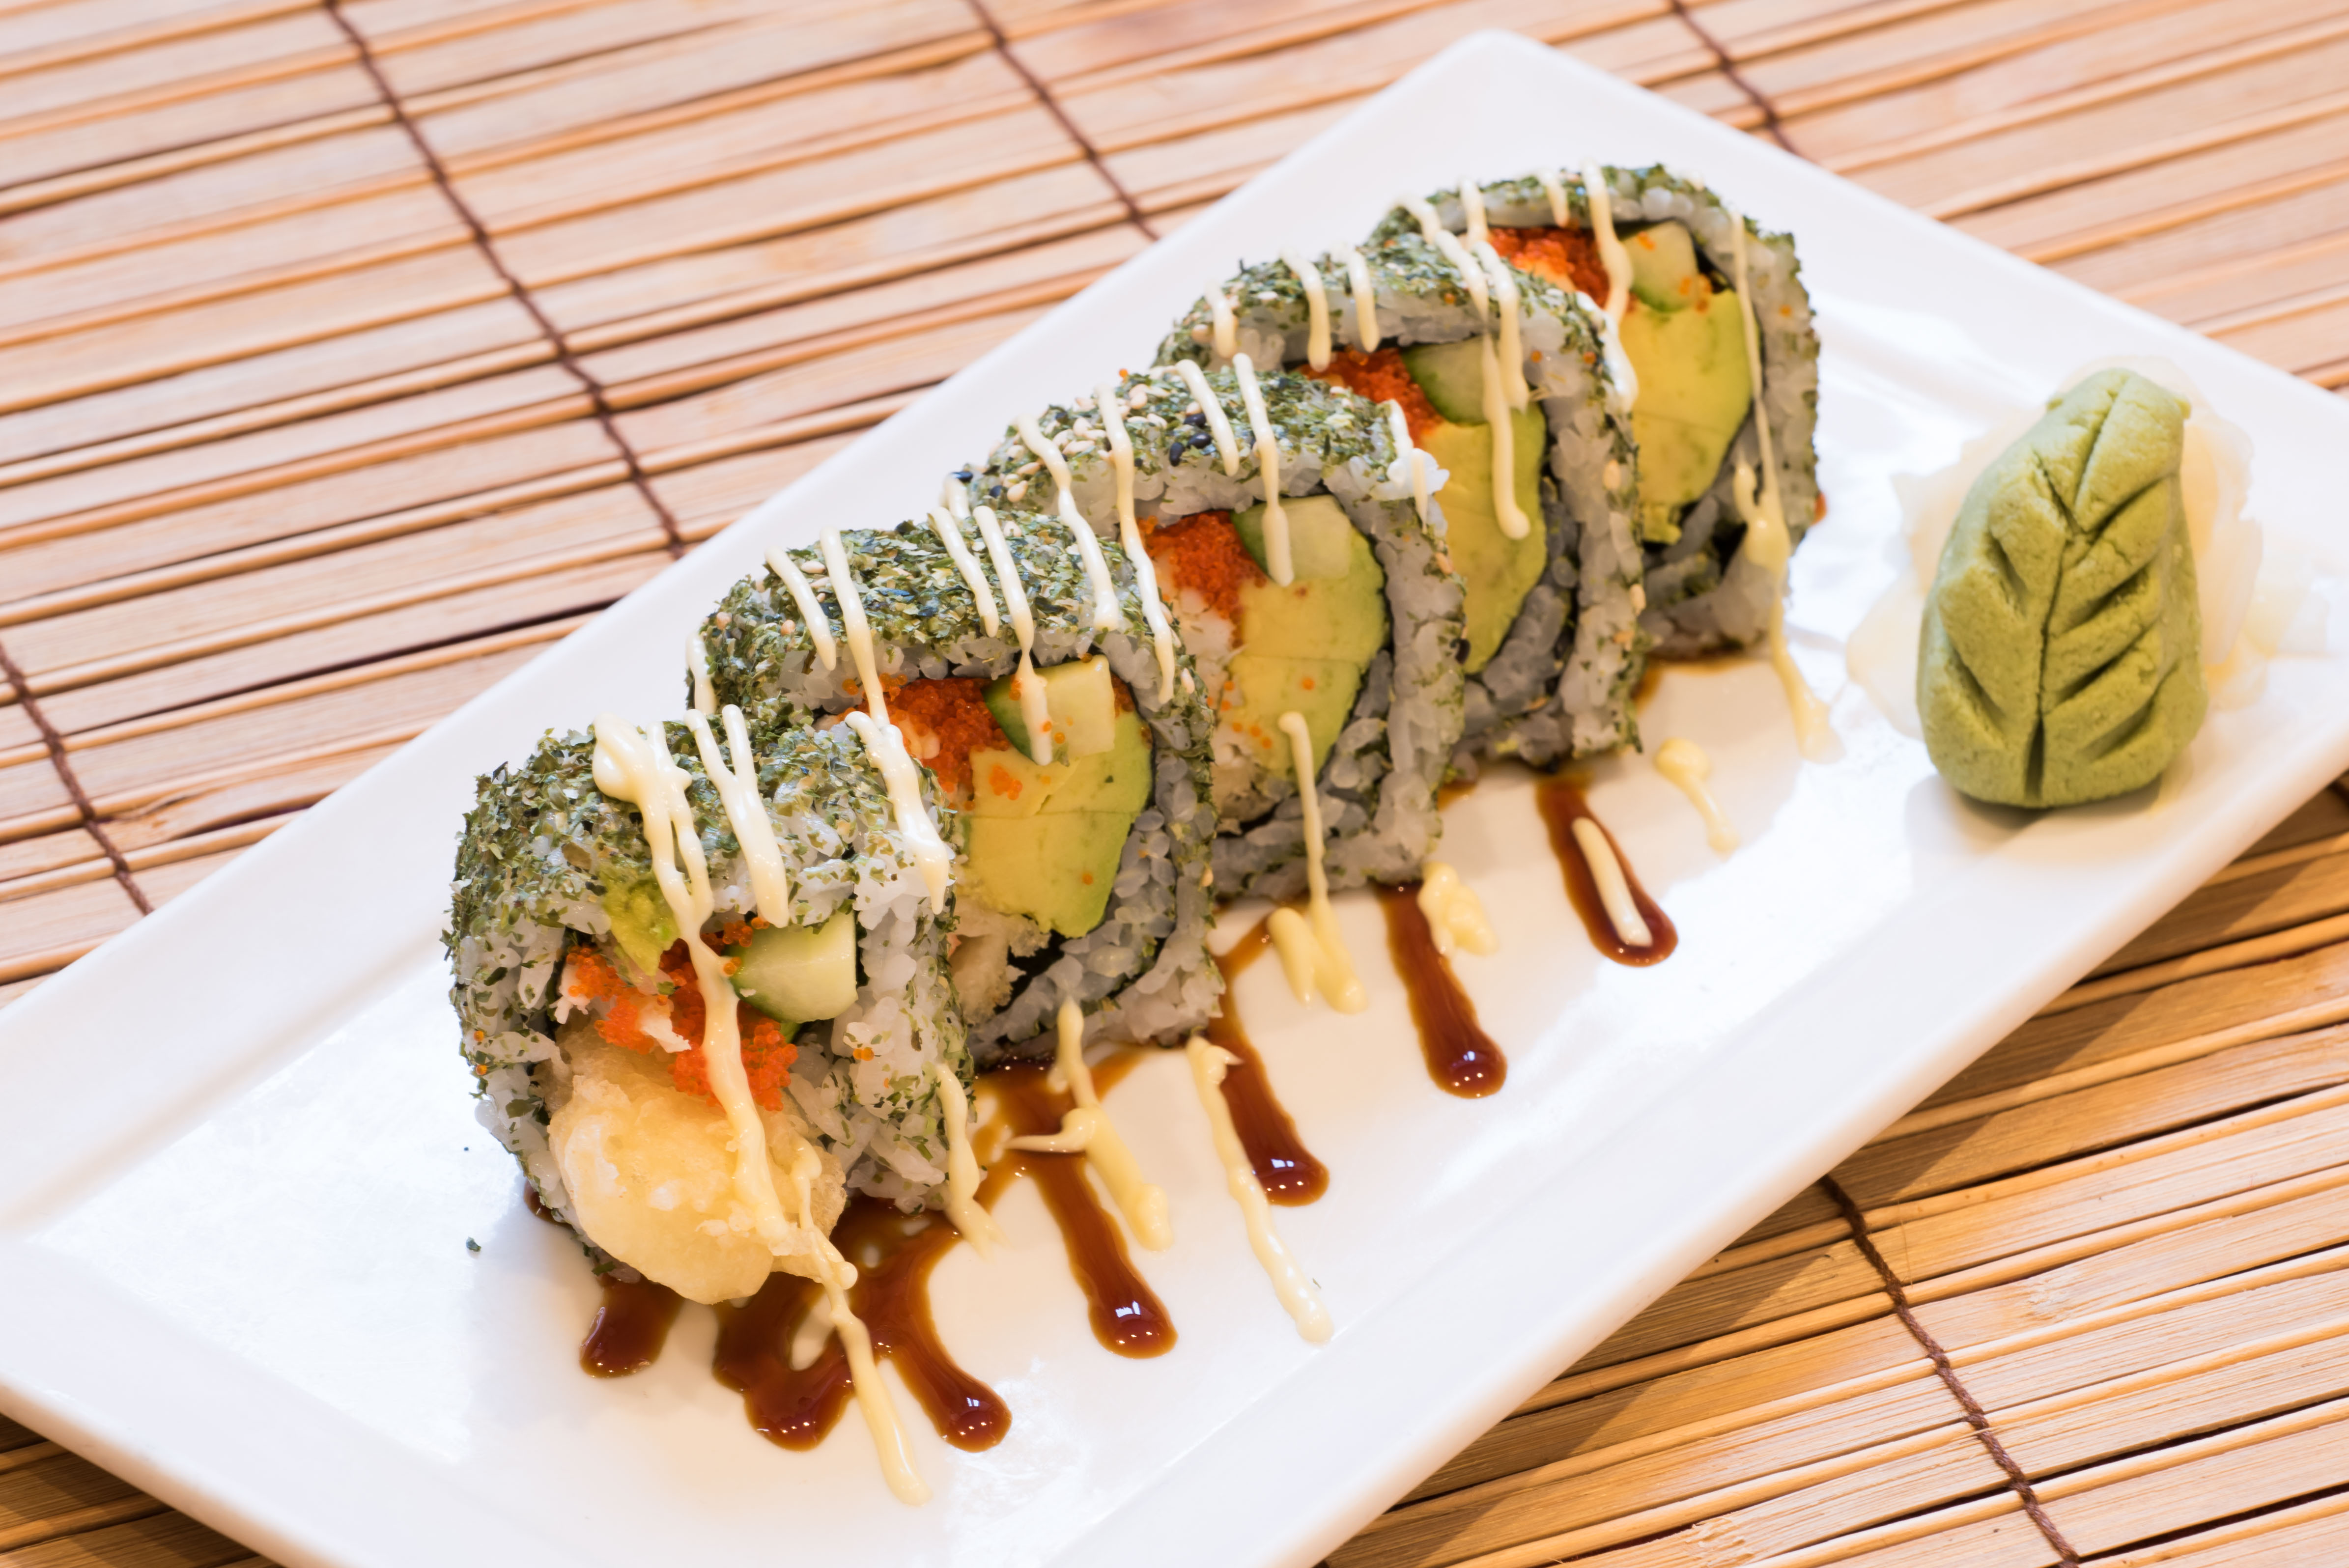 Hurricane Roll 10.00